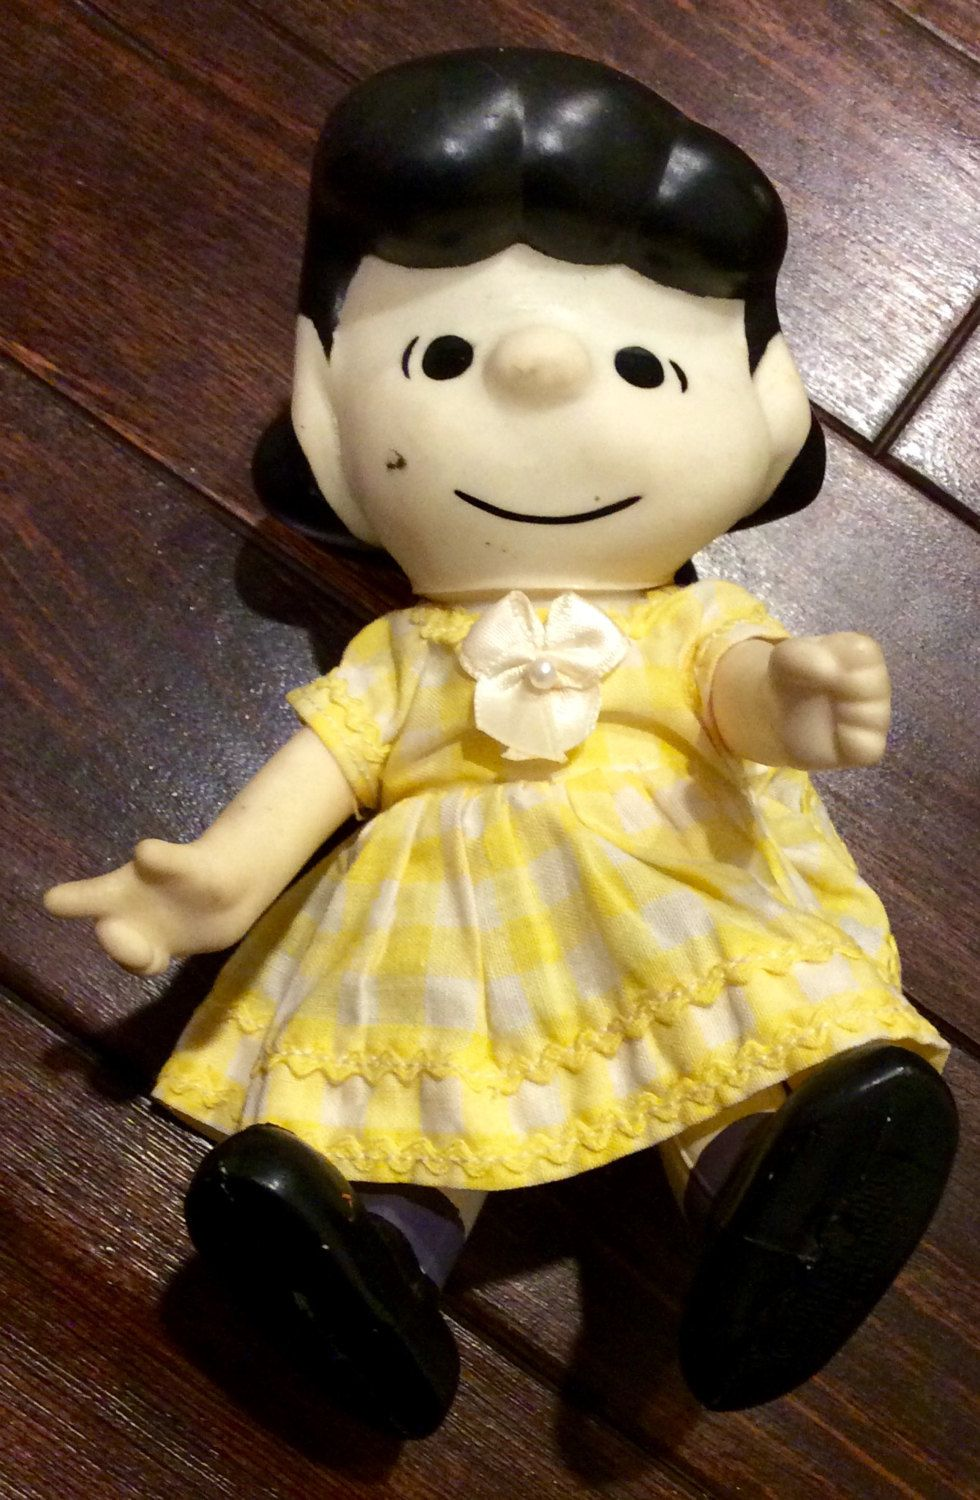 1966 United Features Syndicate 7 Lucy Peanuts Gang Poseable Pocket Doll Vintage Peanuts Pocket Dolls Charlie Brown Poc Peanuts Gang Vinyl Dolls Colorful Toys